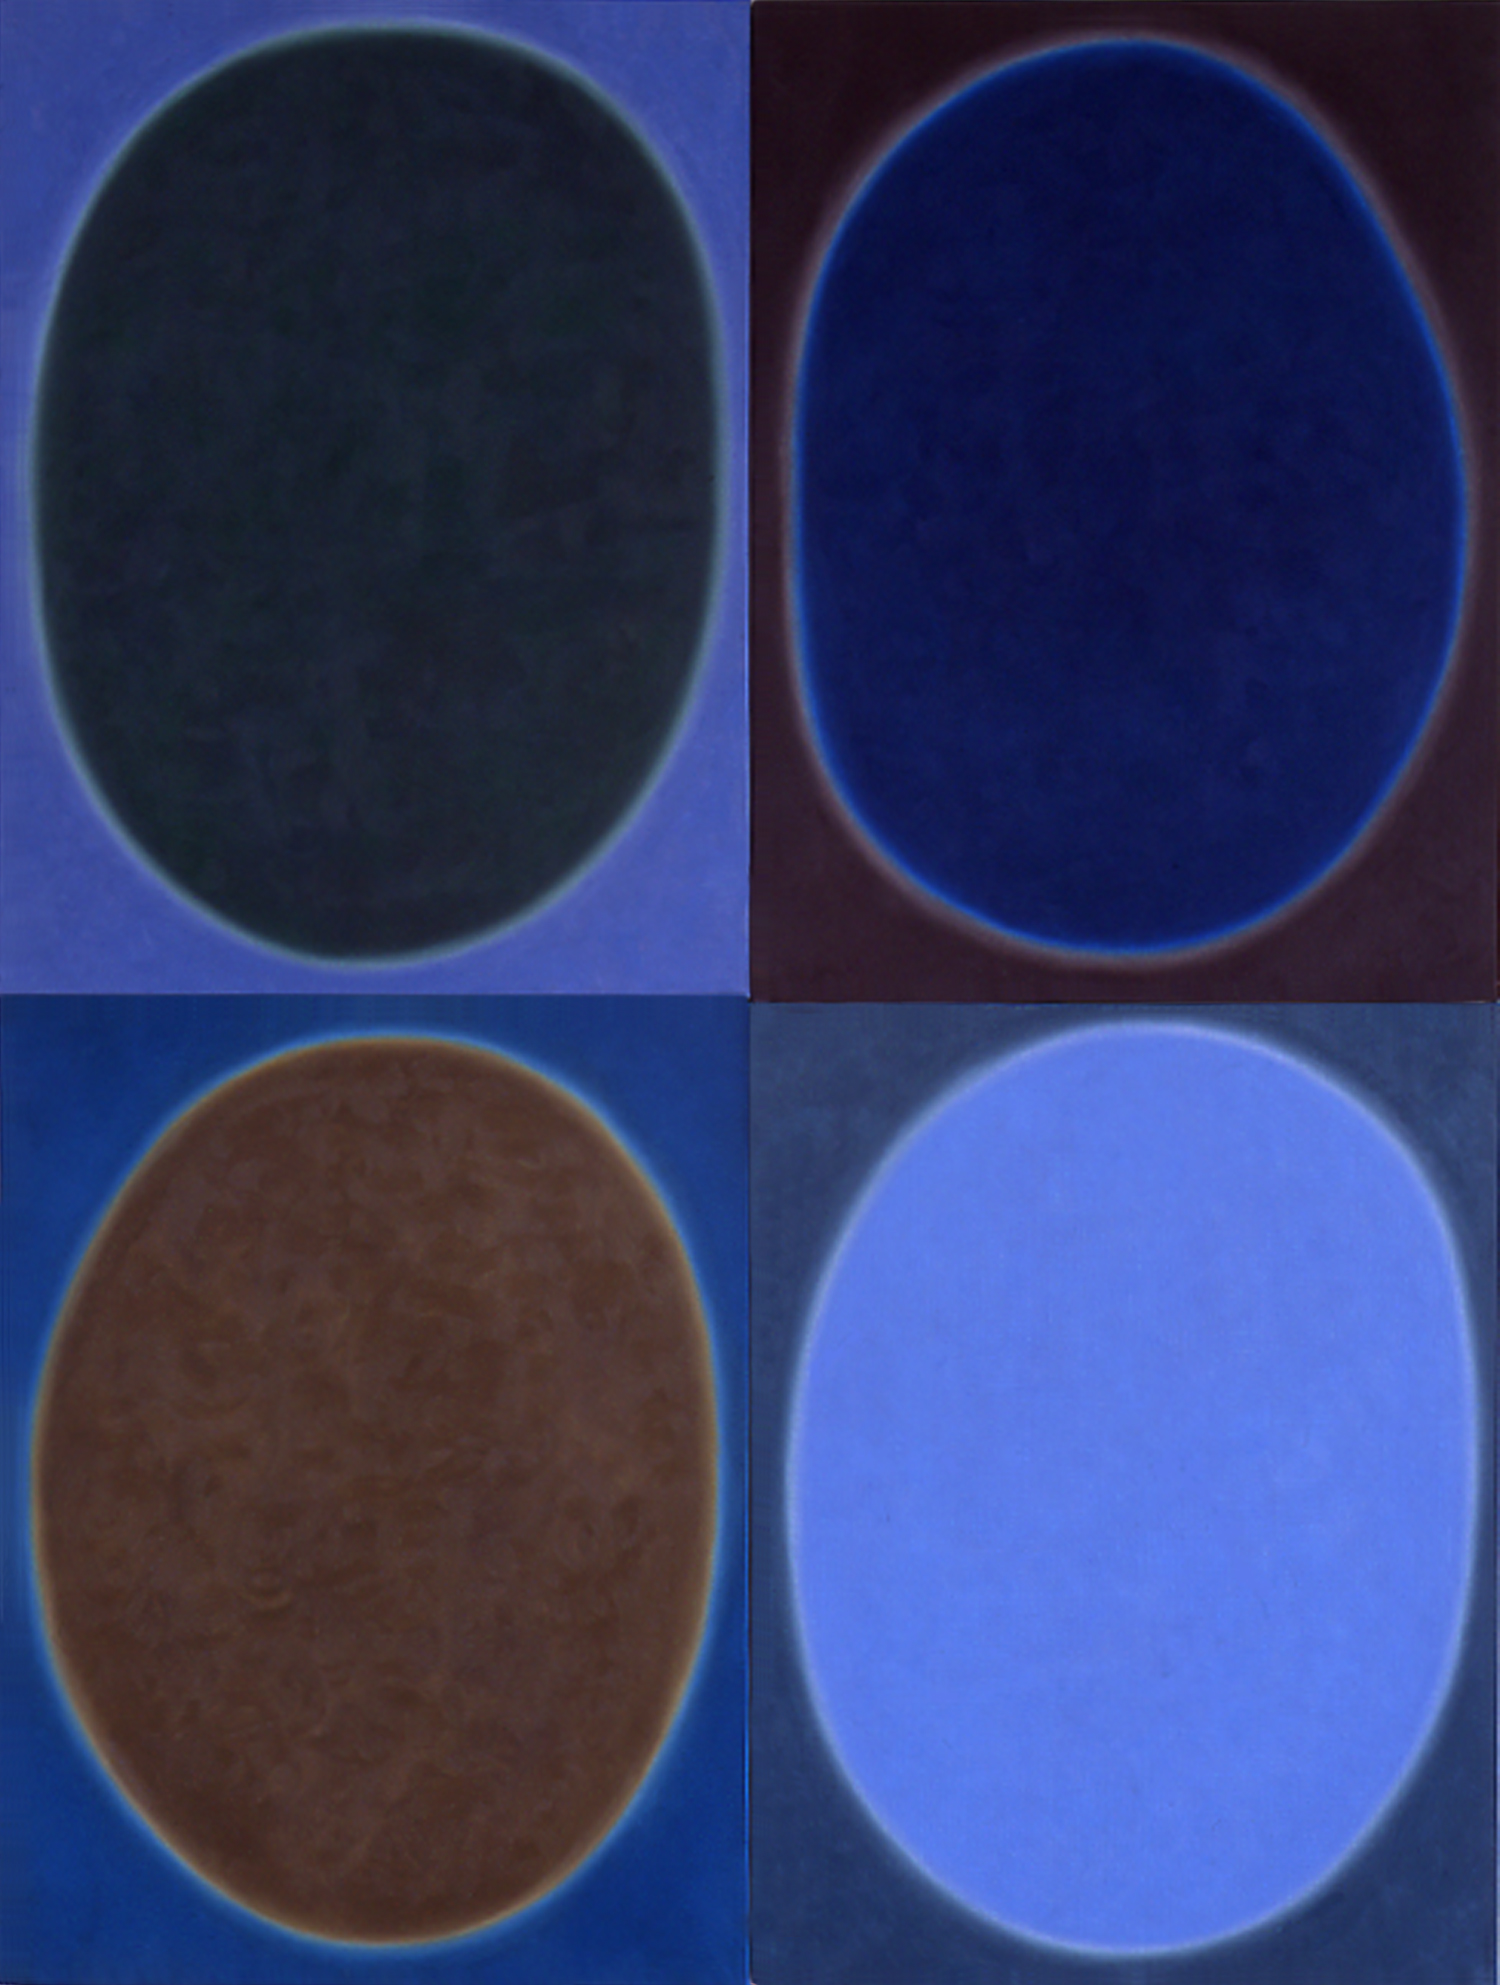 """Silent 12, oil on canvas, 2002, series of 4 panels W18"""" x H24"""" each, total format W36"""" x H48"""". Private collection."""